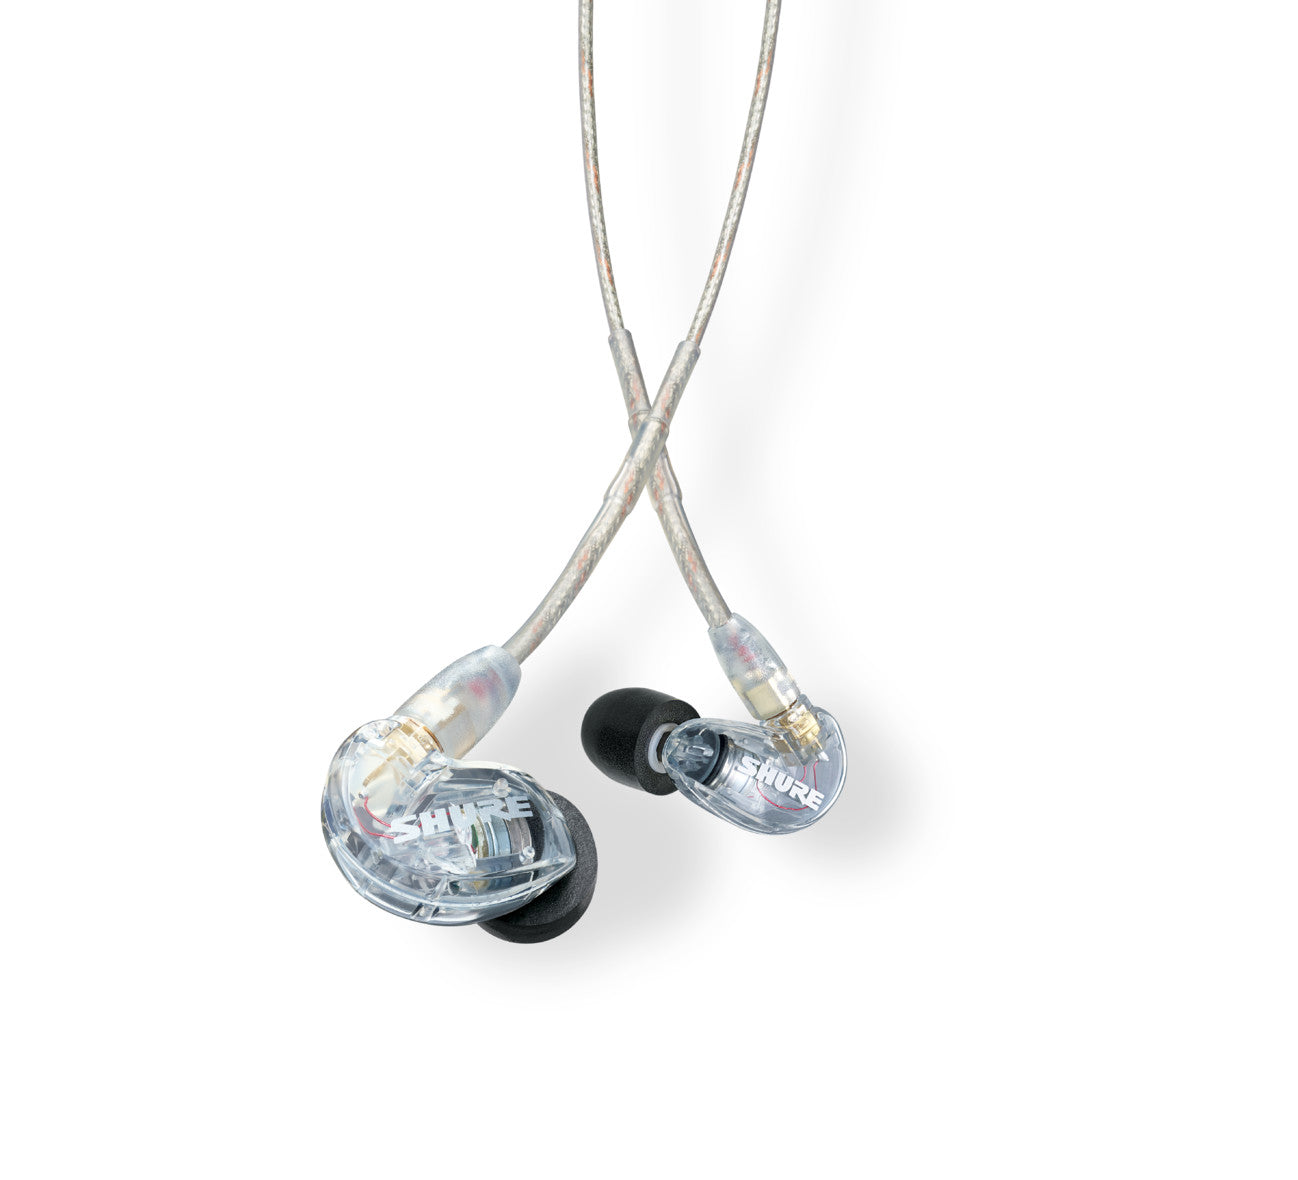 Shure SE215-CL Clear Isolating Earphones with Single Driver